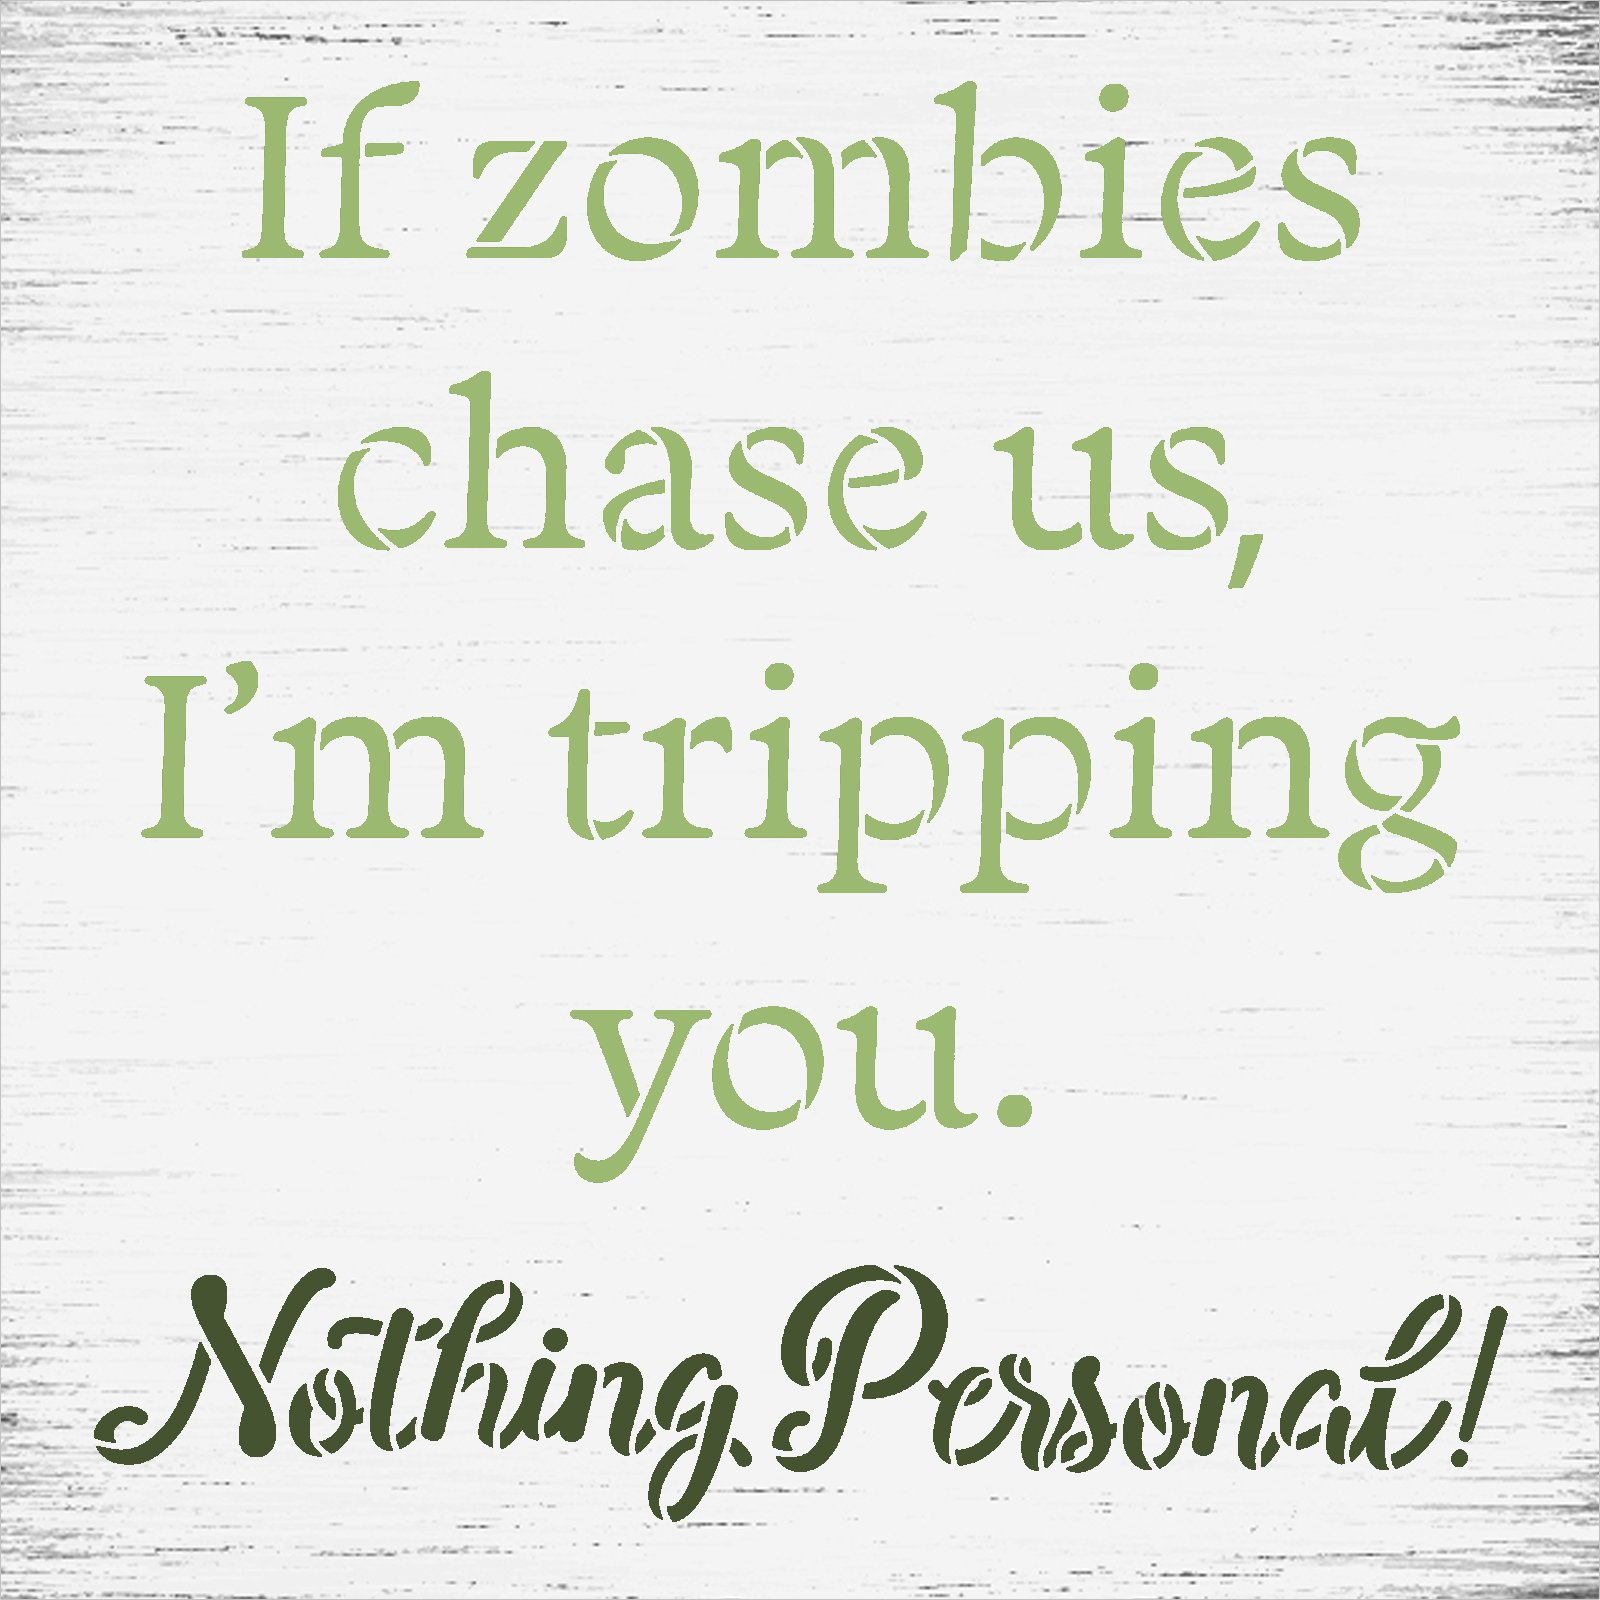 Zombies Chase Us - I'm Tripping You Stencil by StudioR12   Nothing Personal   Craft DIY Halloween Home Decor   Paint Funny Wood Sign   Select Size